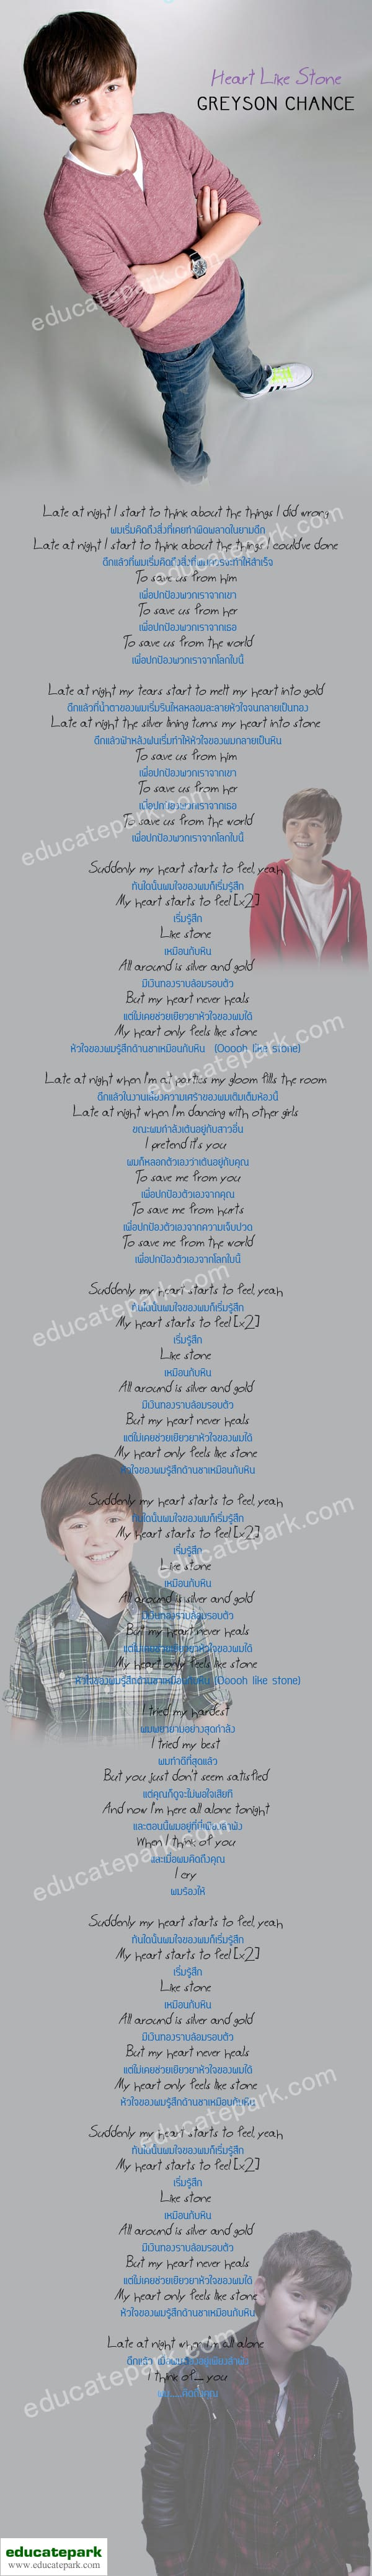 แปลเพลง Heart like Stone - Greyson Chance